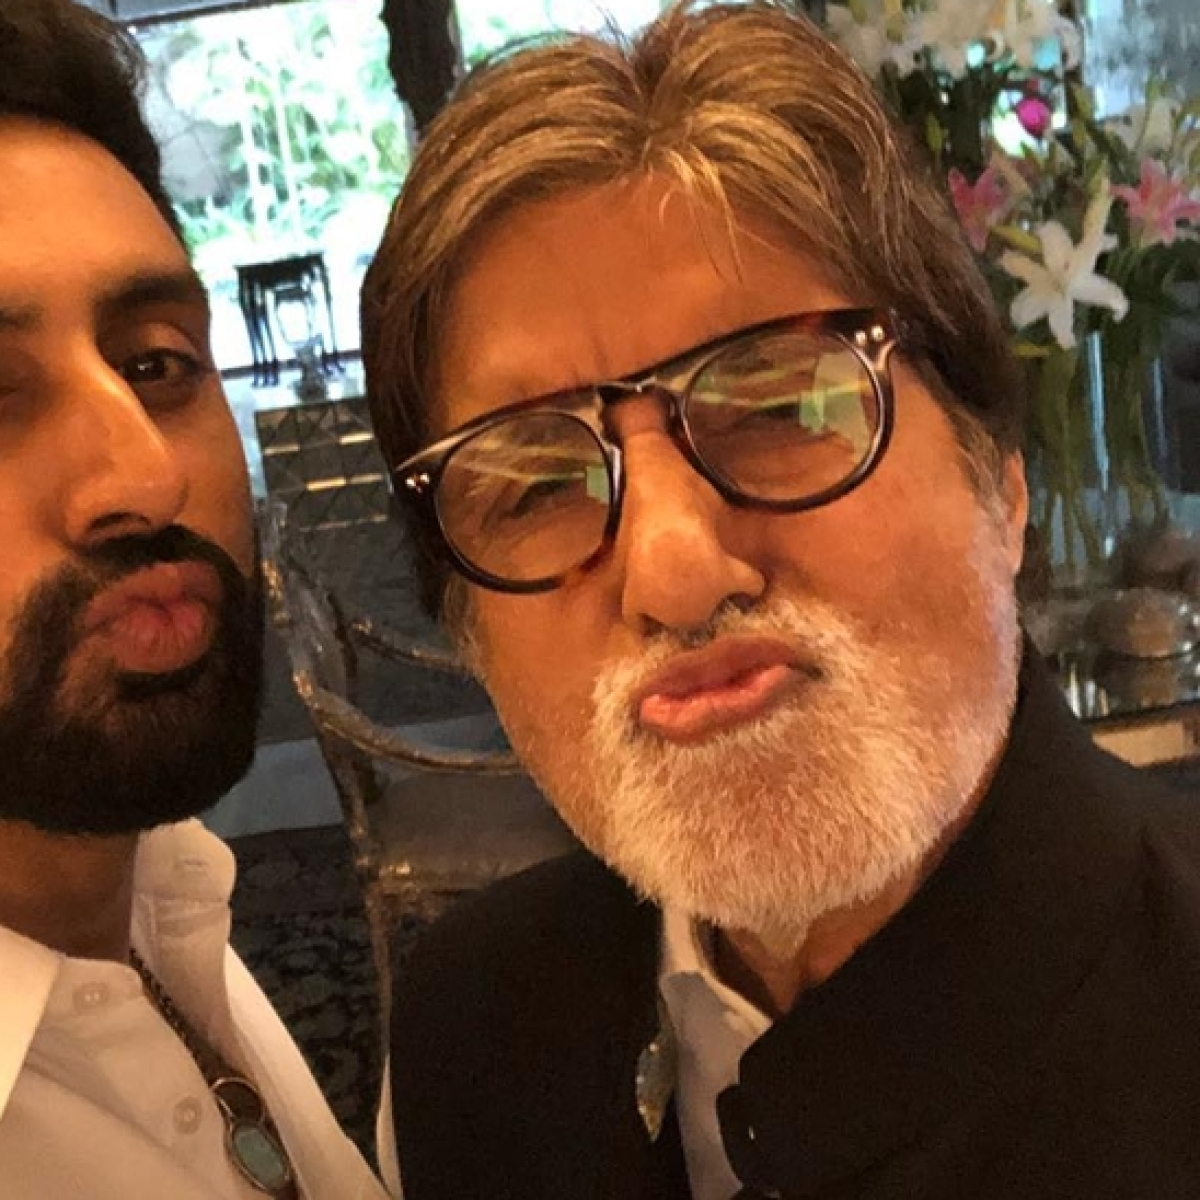 First on FPJ: Abhishek Bachchan confirms Amitabh has been discharged, gives own health update